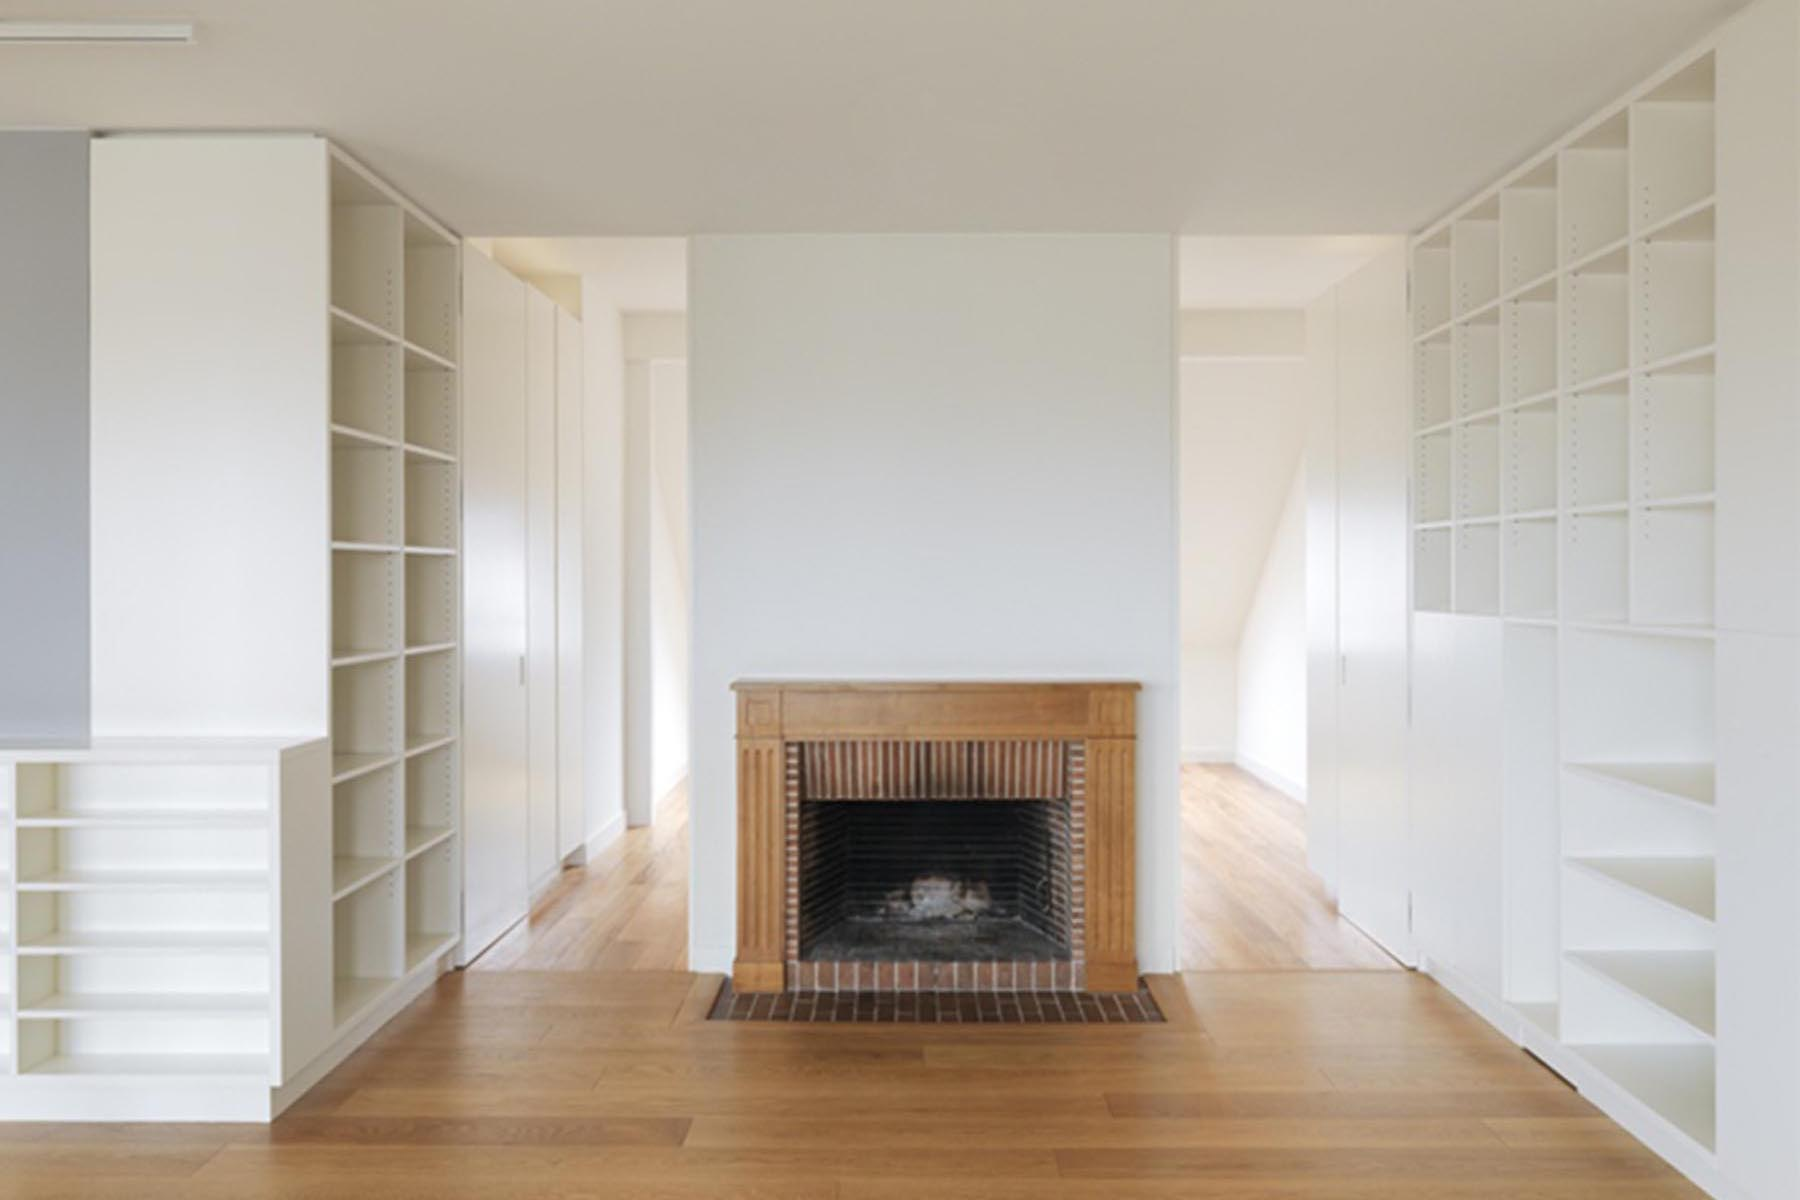 Genève / Geneva, Transformation d'appartement / Flat refurbishment, Burrus Nussbaumer Architectes